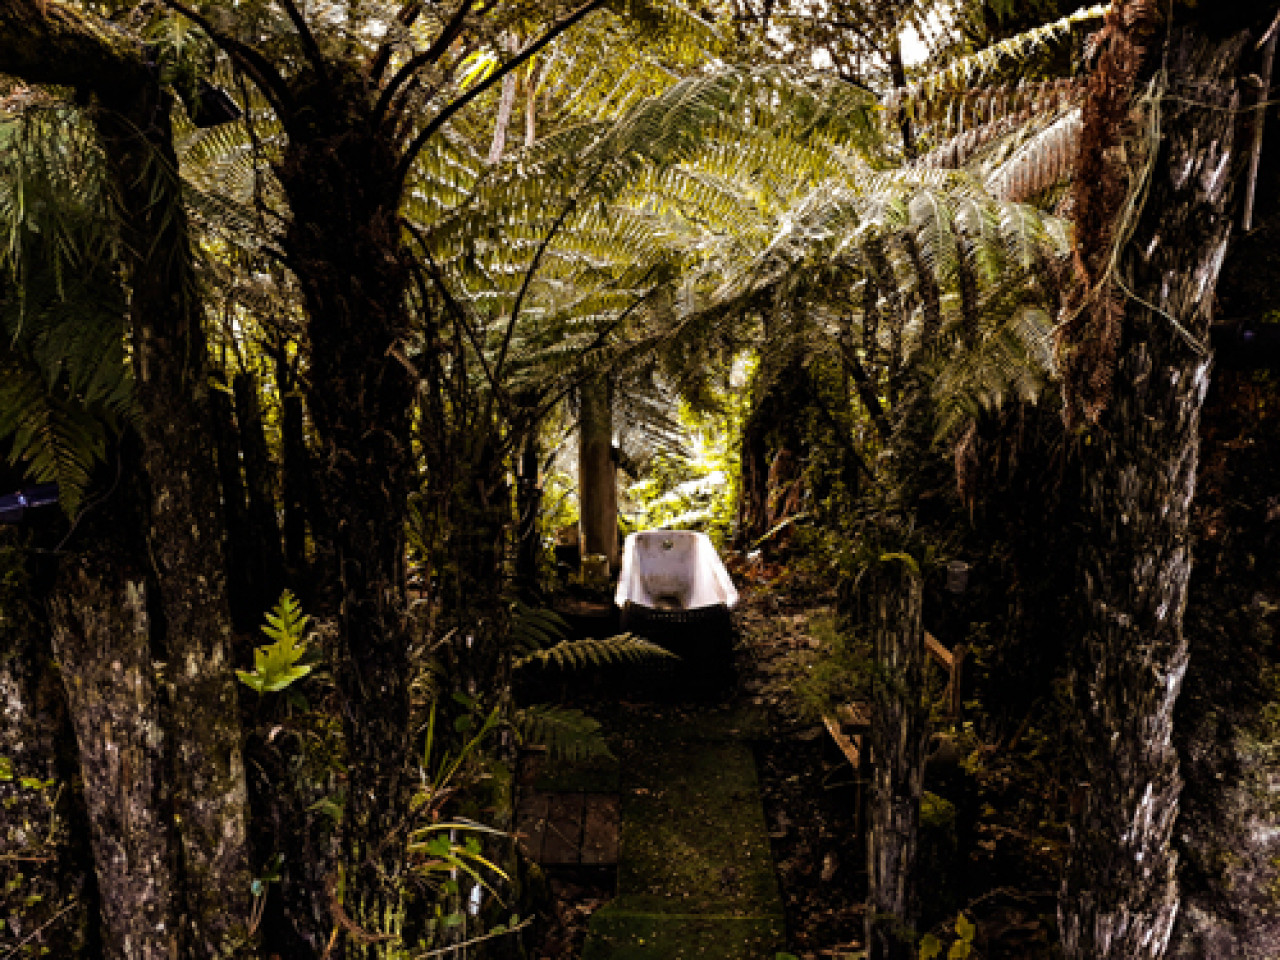 The Flying Fox Lodge might not offer five-star luxury accommodation, but where else can you have a bath amongst the tree ferns?